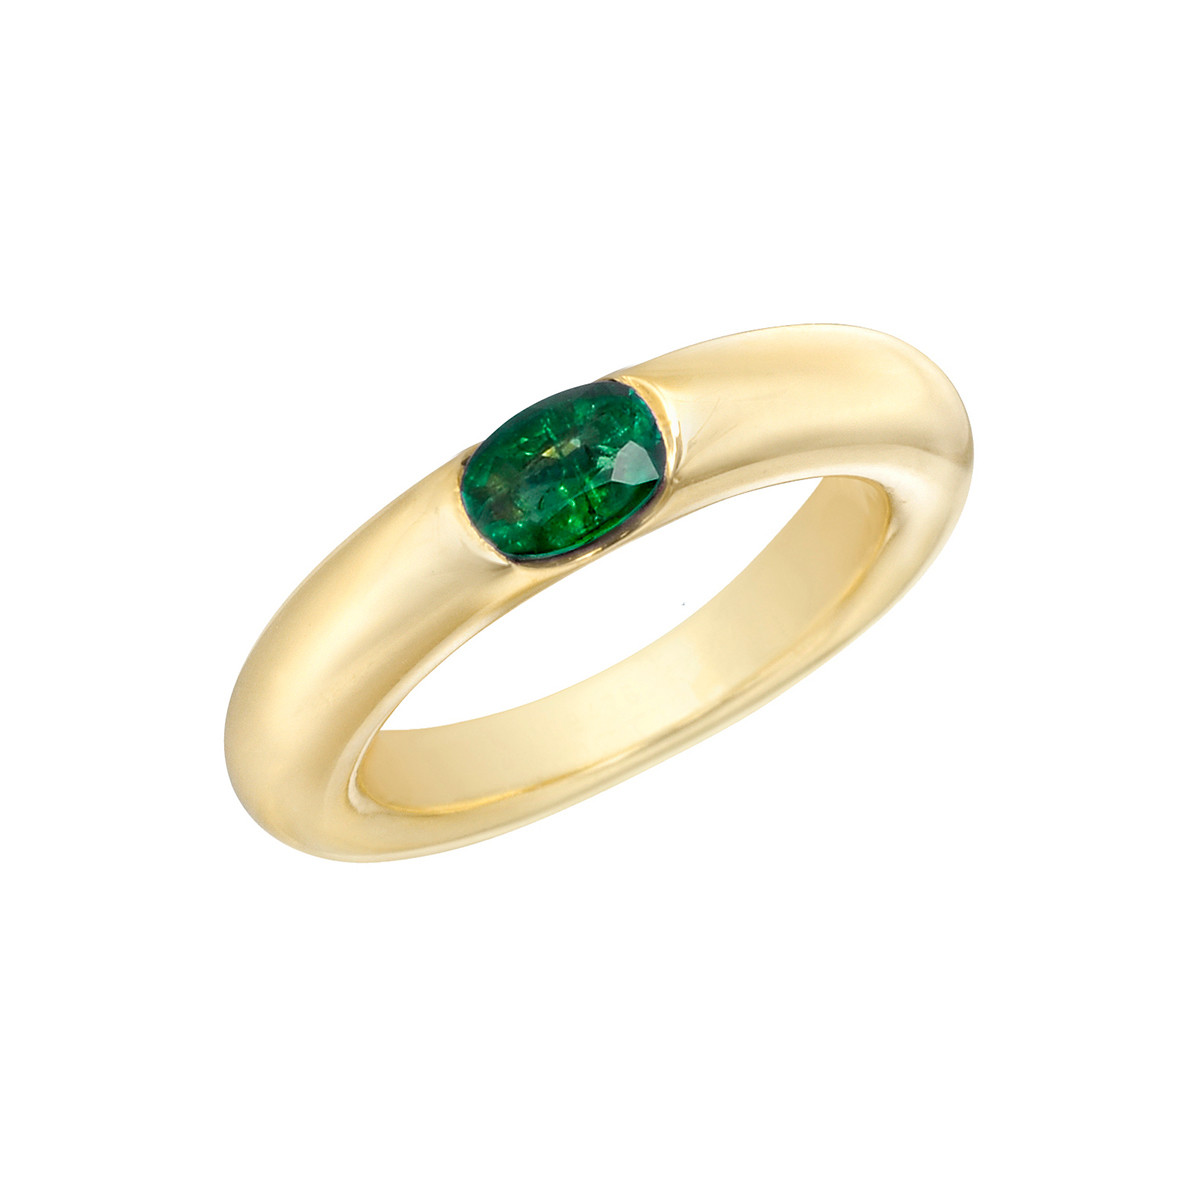 18k Yellow Gold & Emerald Gypsy Ring